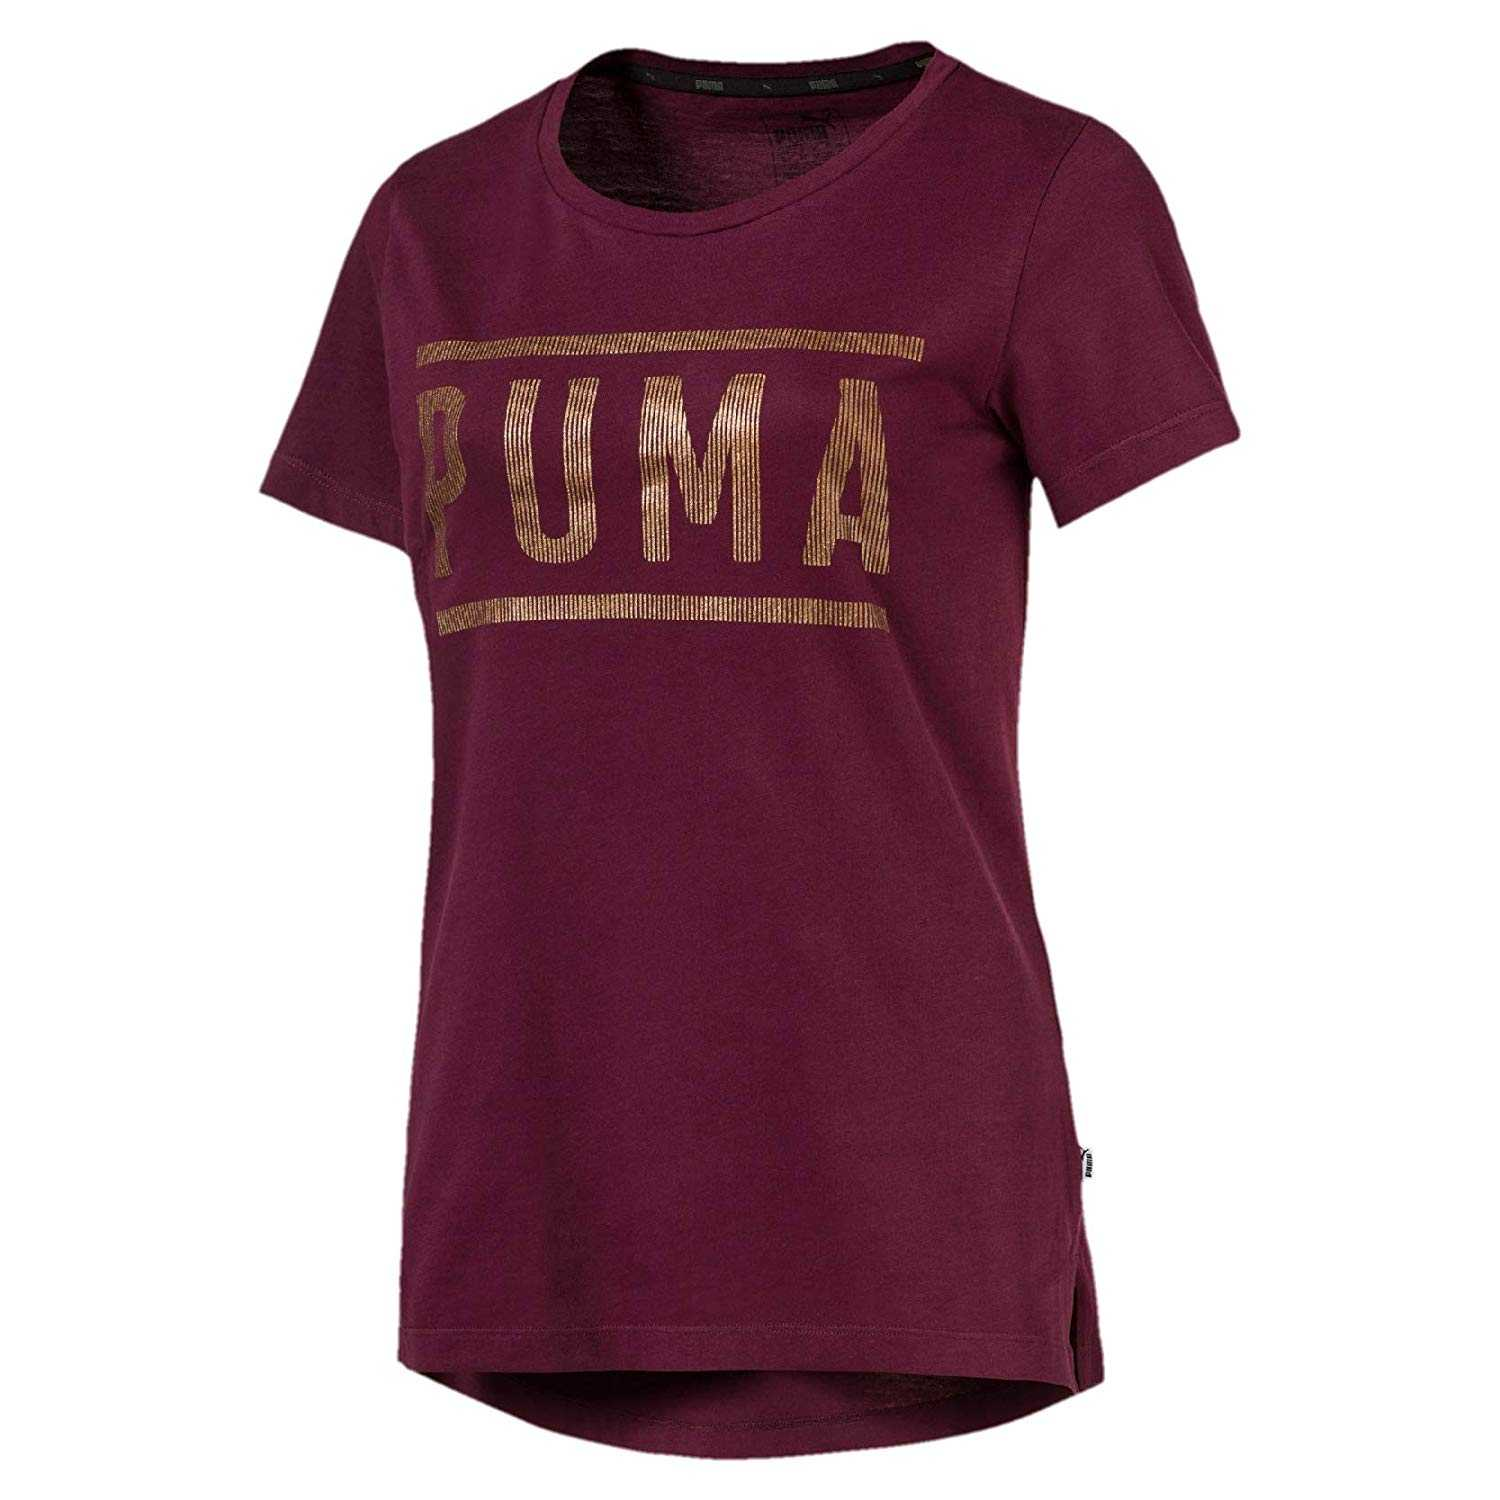 tee shirt for women